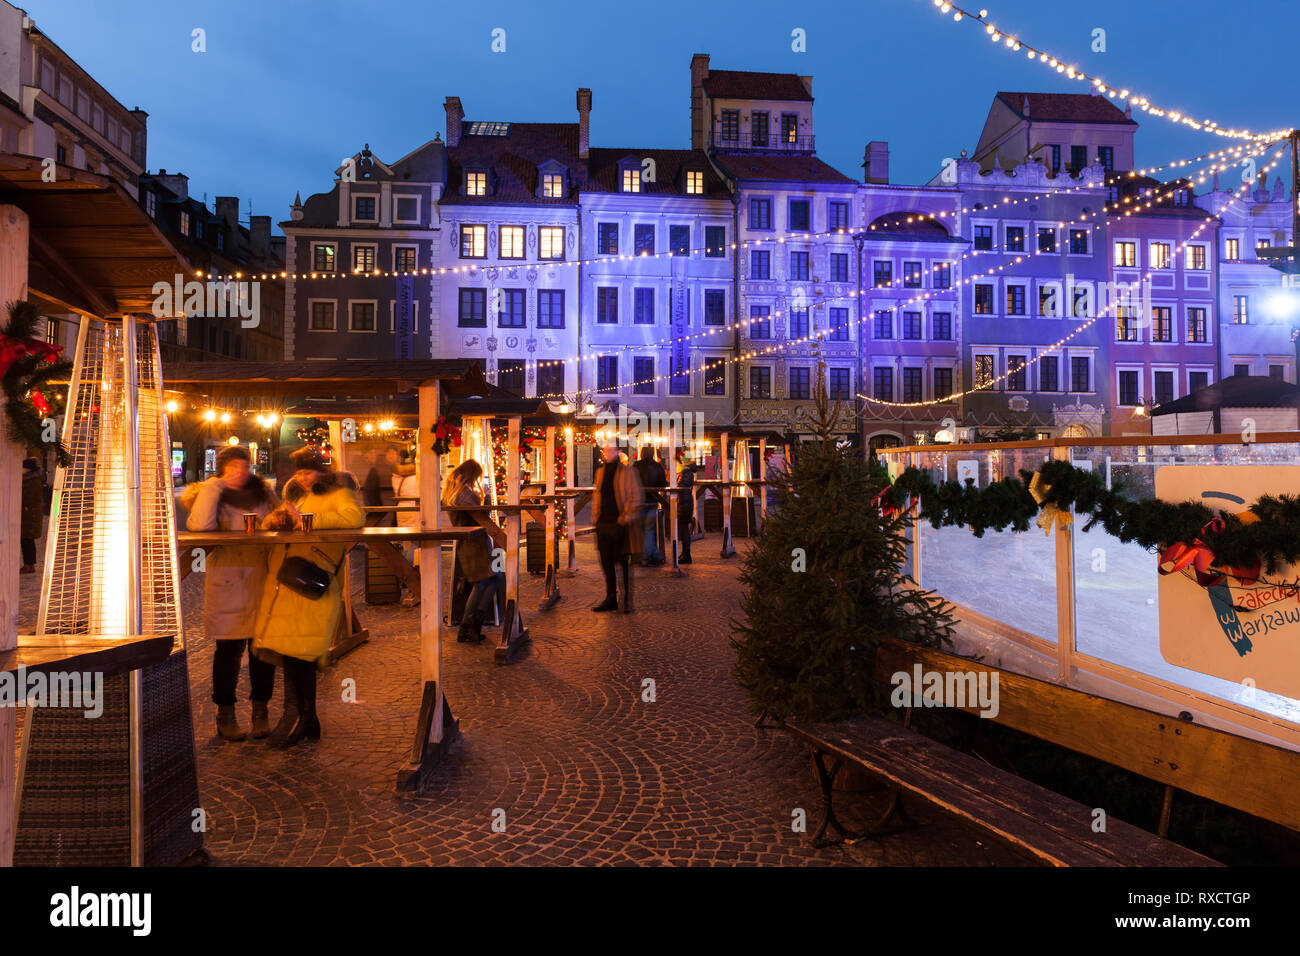 Poland, city of Warsaw, people enjoy their beverages at Old Town Market Square on winter night during Christmas time. - Stock Image